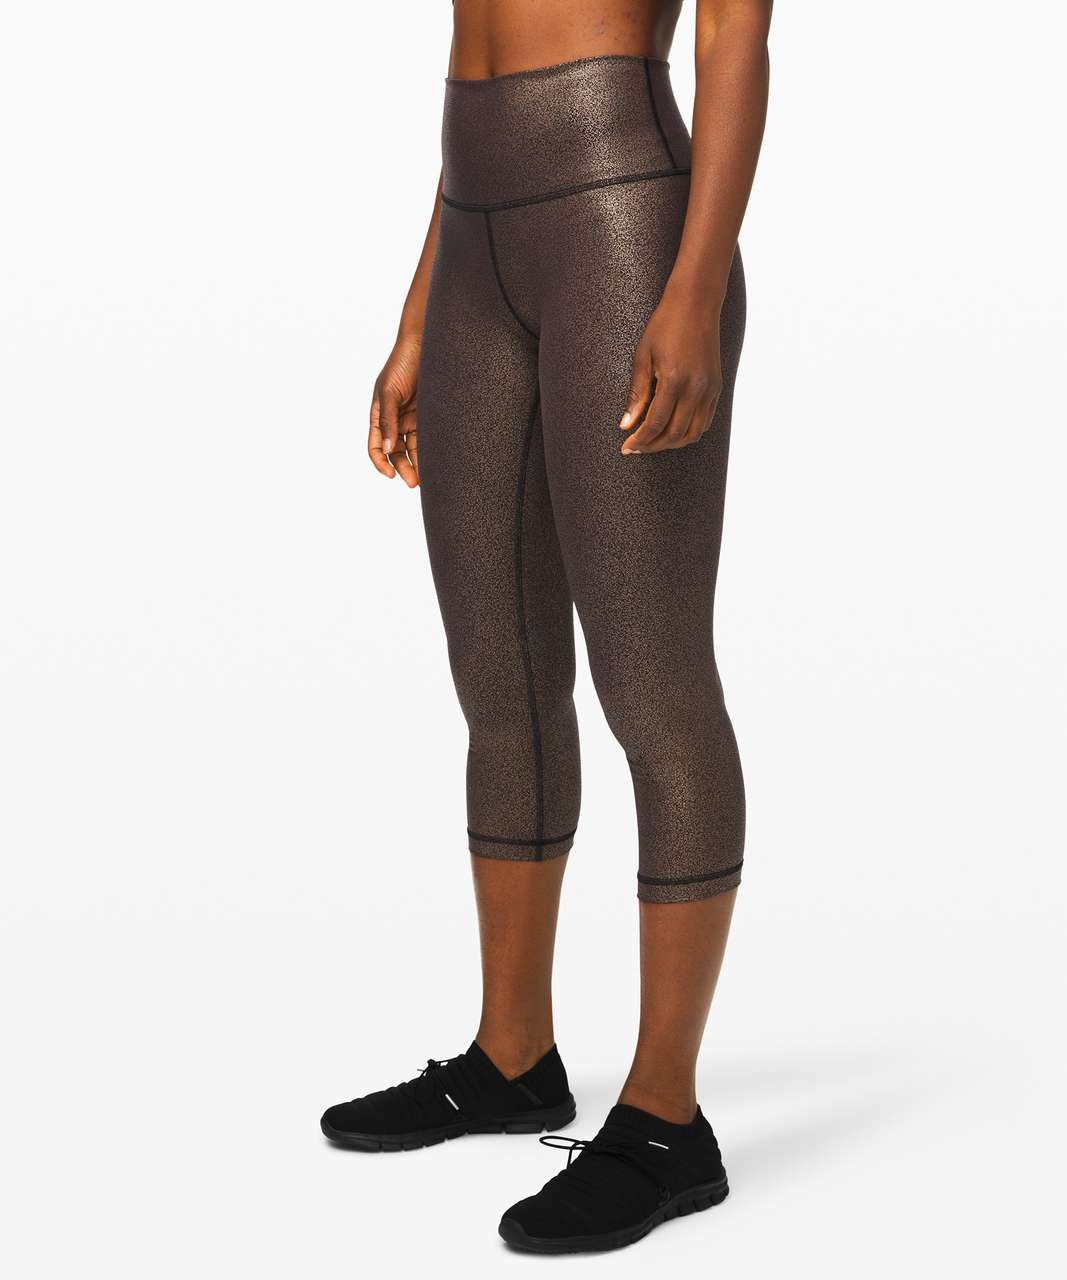 "Lululemon Wunder Under Crop High-Rise *Foil 21"" - Luminosity Foil Print Black Copper Foil"